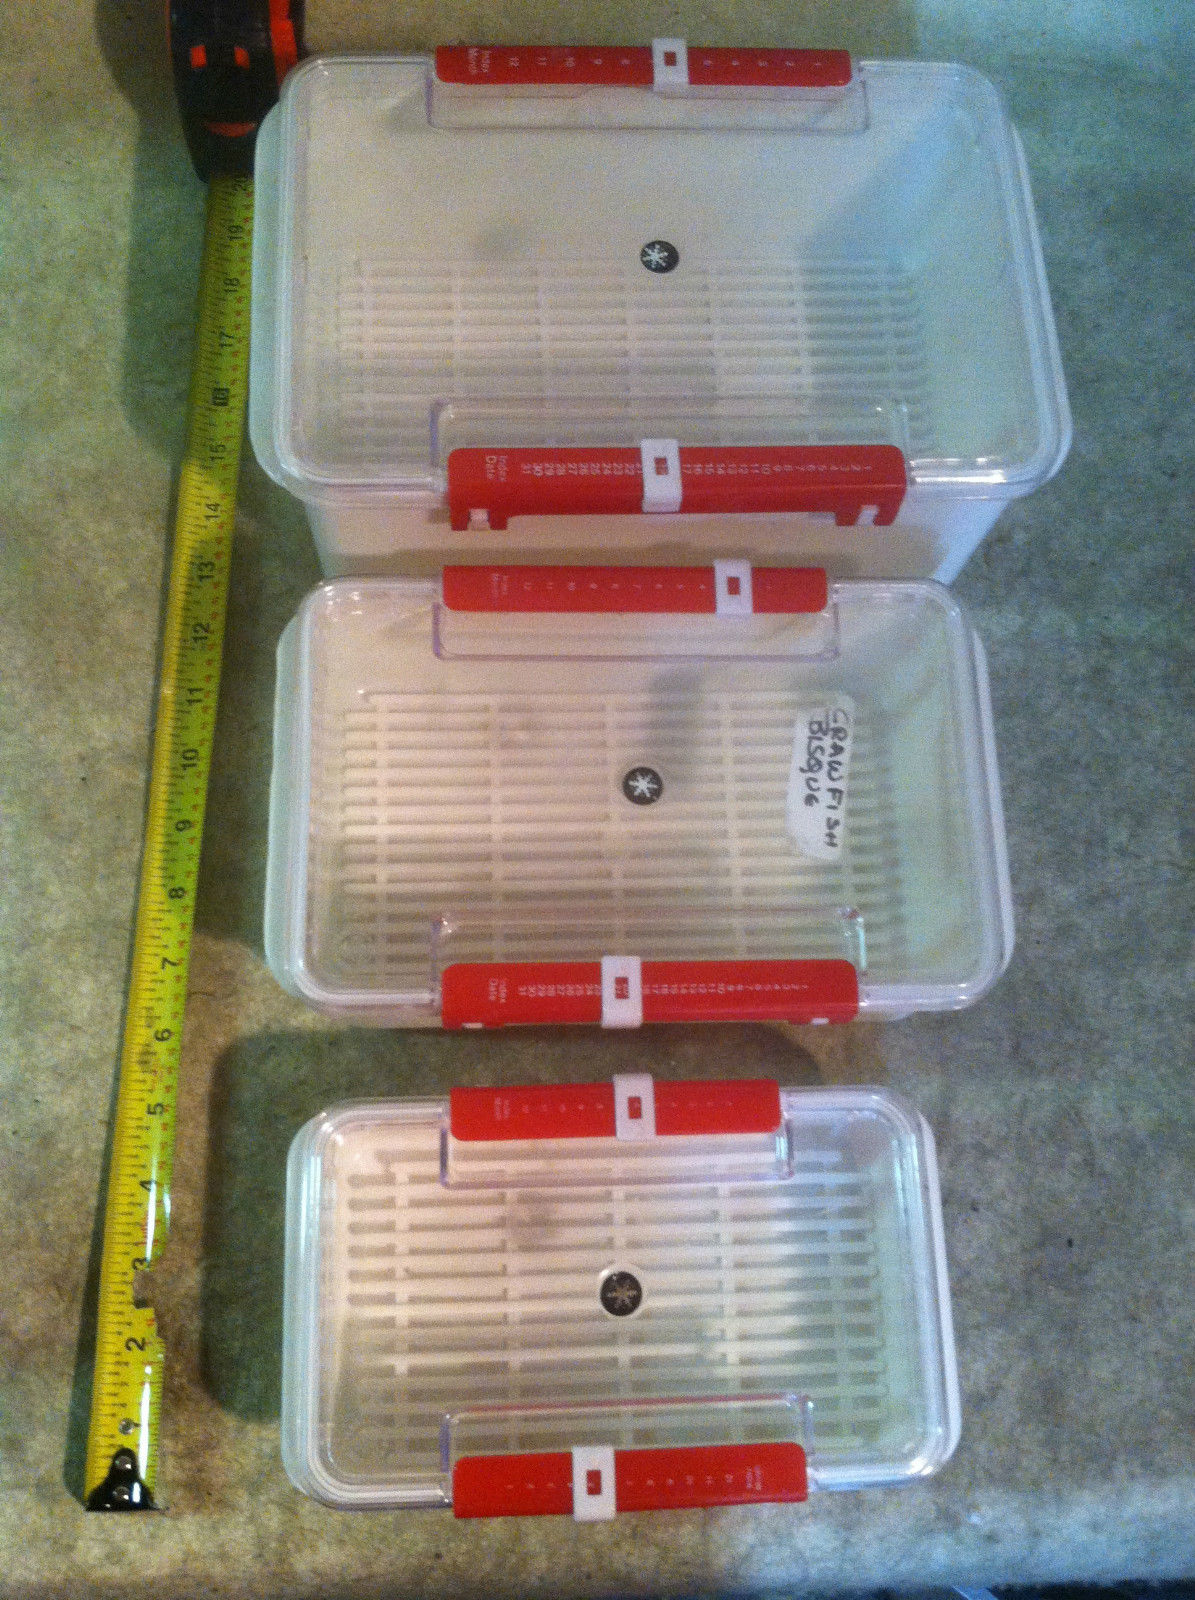 Food storage containers that can be dated - please see pictures....(shelf#A6) 1